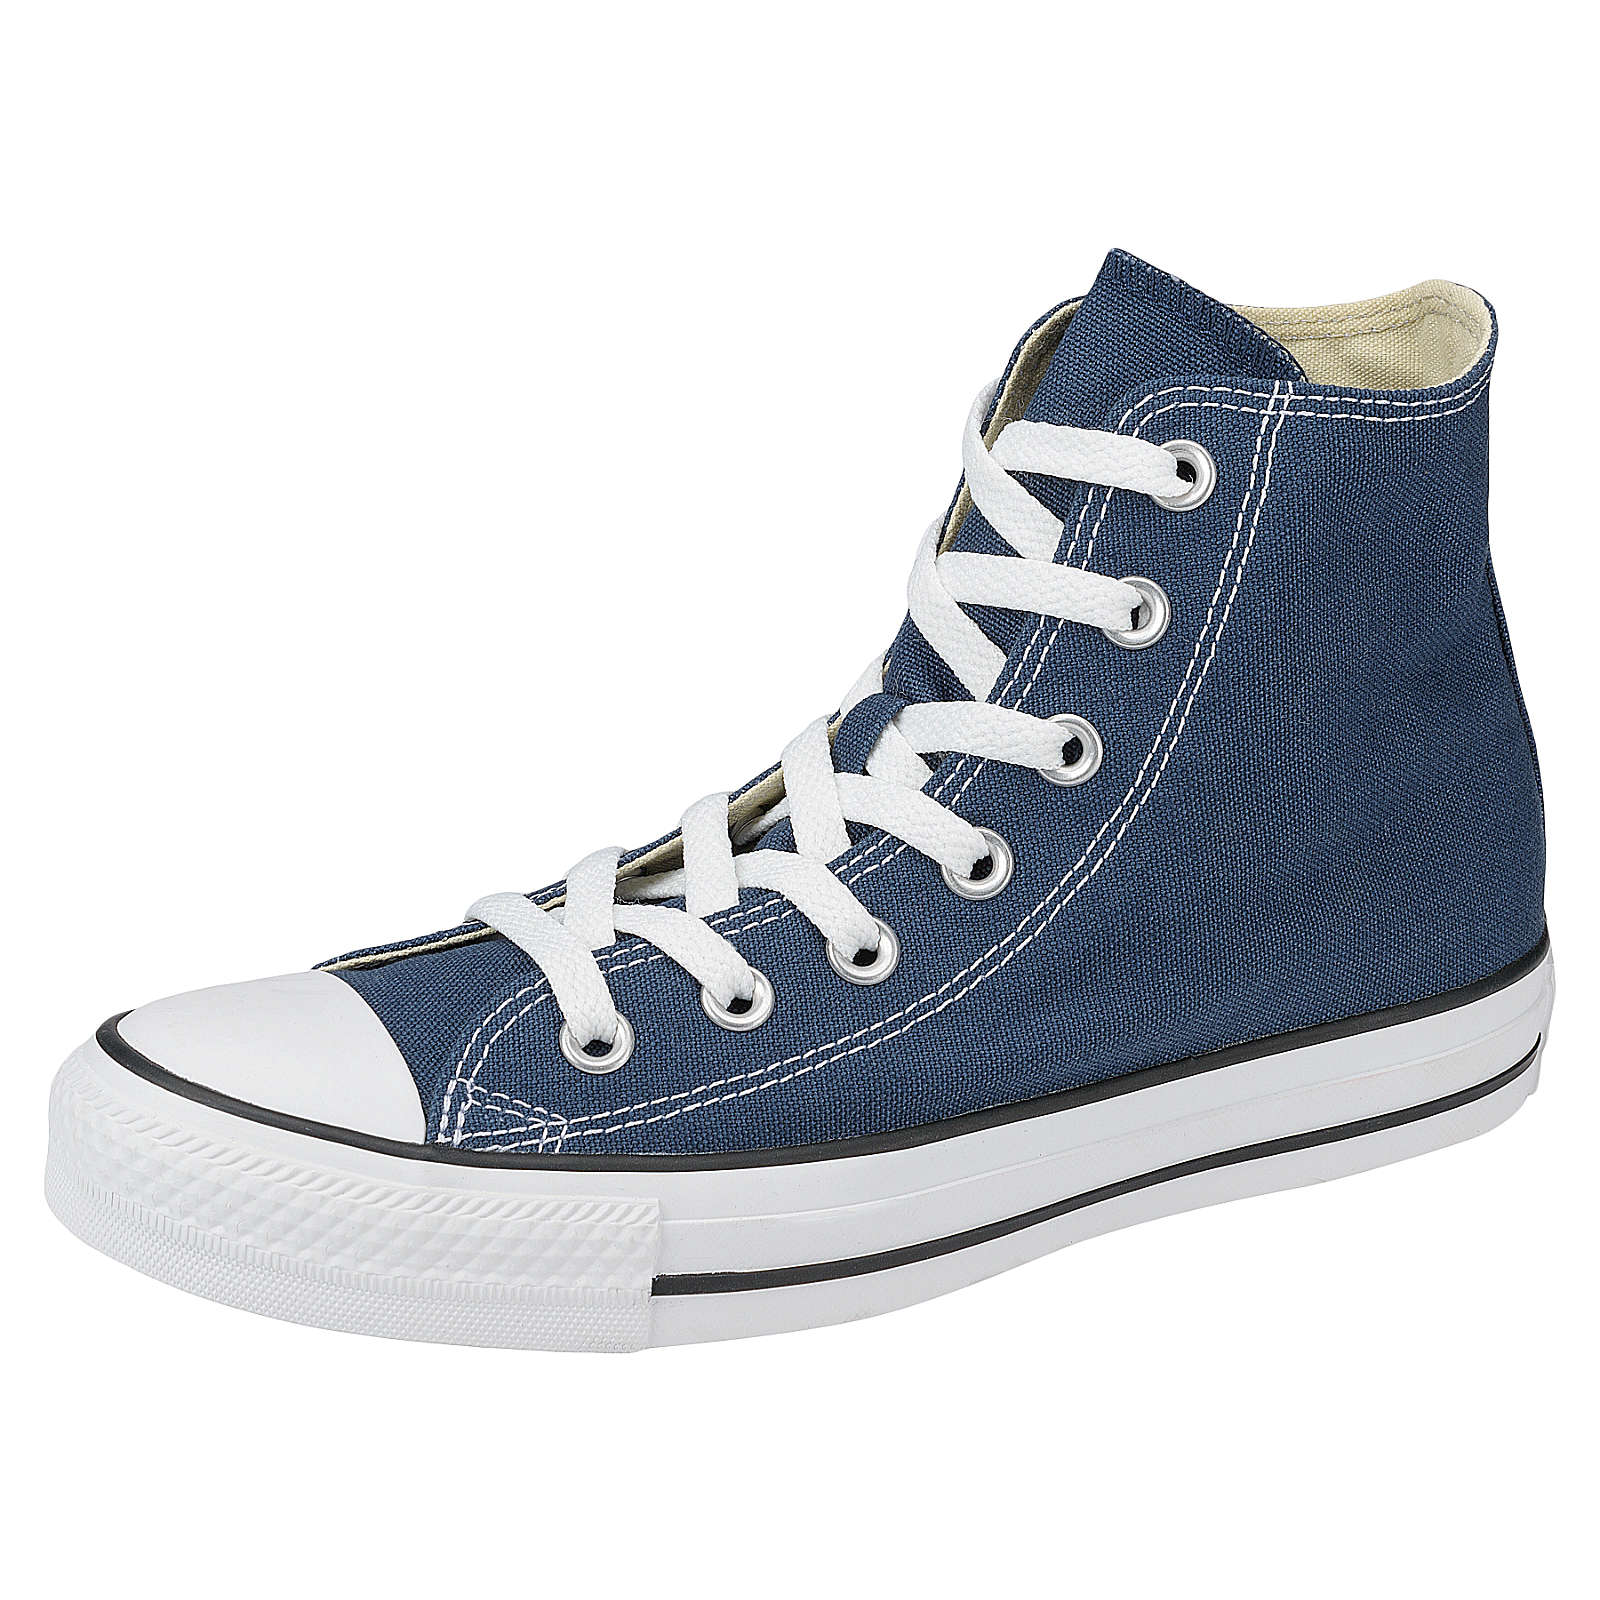 CONVERSE All Star Sneakers High dunkelblau Gr. 36